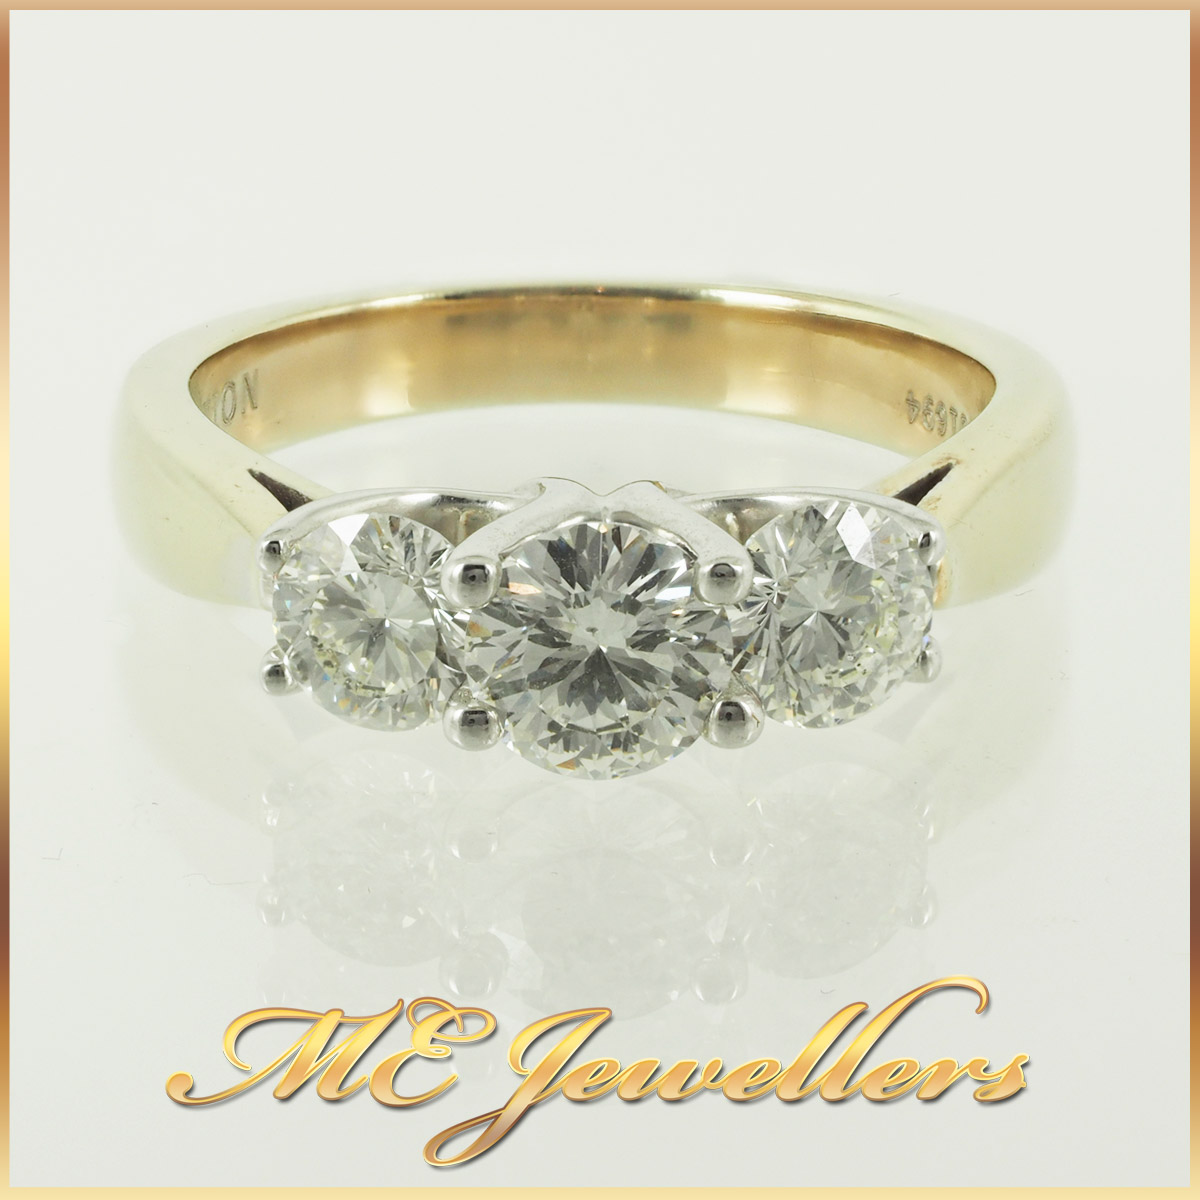 2945_three-stone-diamond-ring-engagement-trilogy-1-45ct-tdw-solid-18k-750-yellow-gold-5